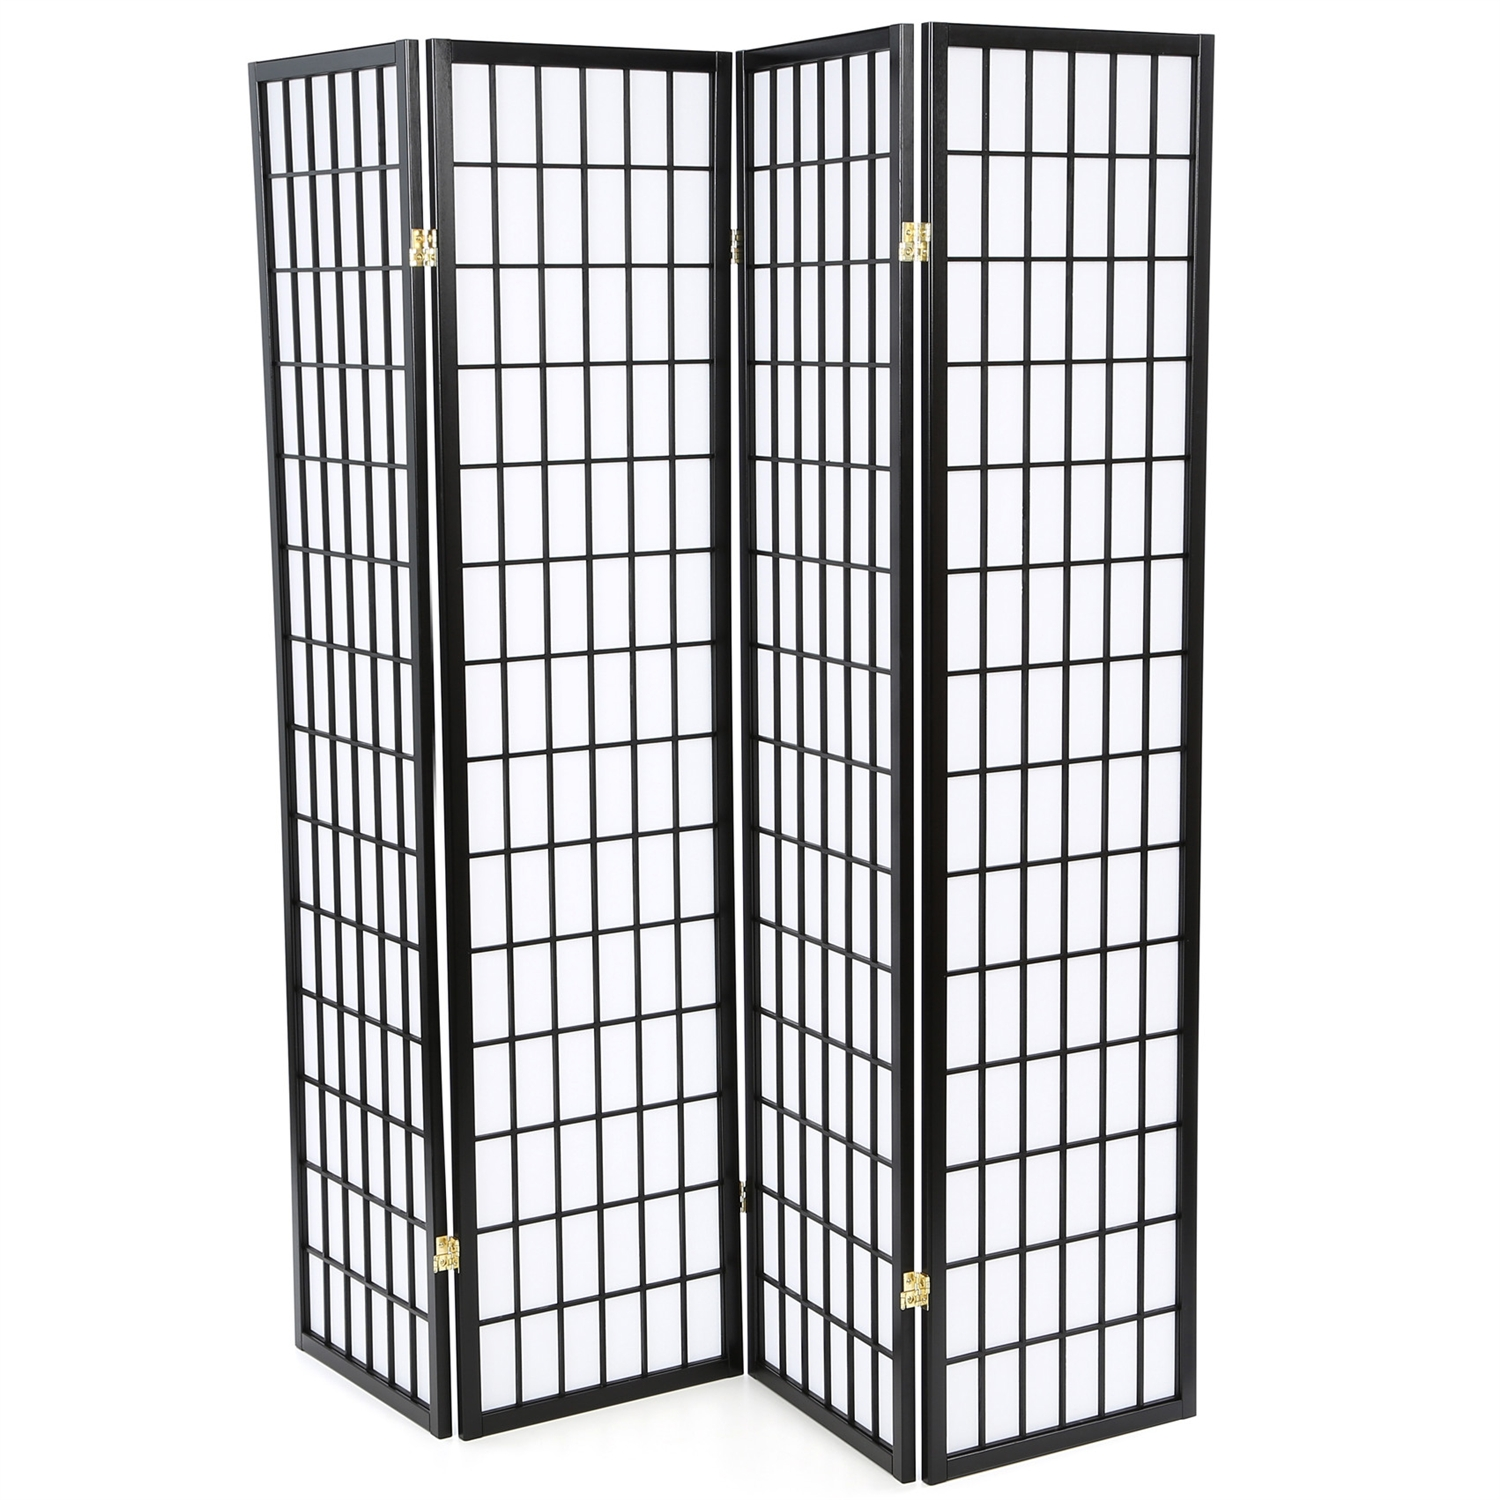 Outstanding Black 4 Panel Asian Style Shoji Room Divider Screen Home Interior And Landscaping Analalmasignezvosmurscom